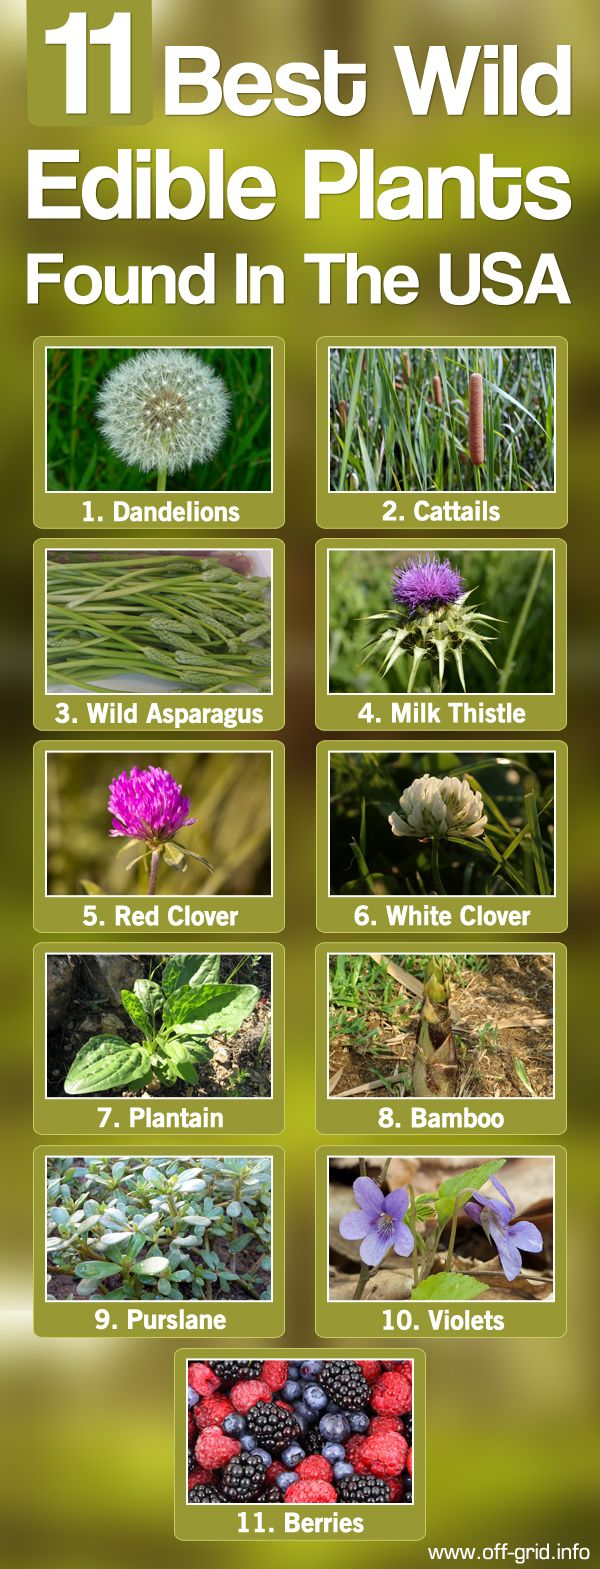 11 Best Wild Edible Plants Found In The USA►►http://off-grid.info/blog/11-best-wild-edible-plants-found-in-the-usa/?i=p